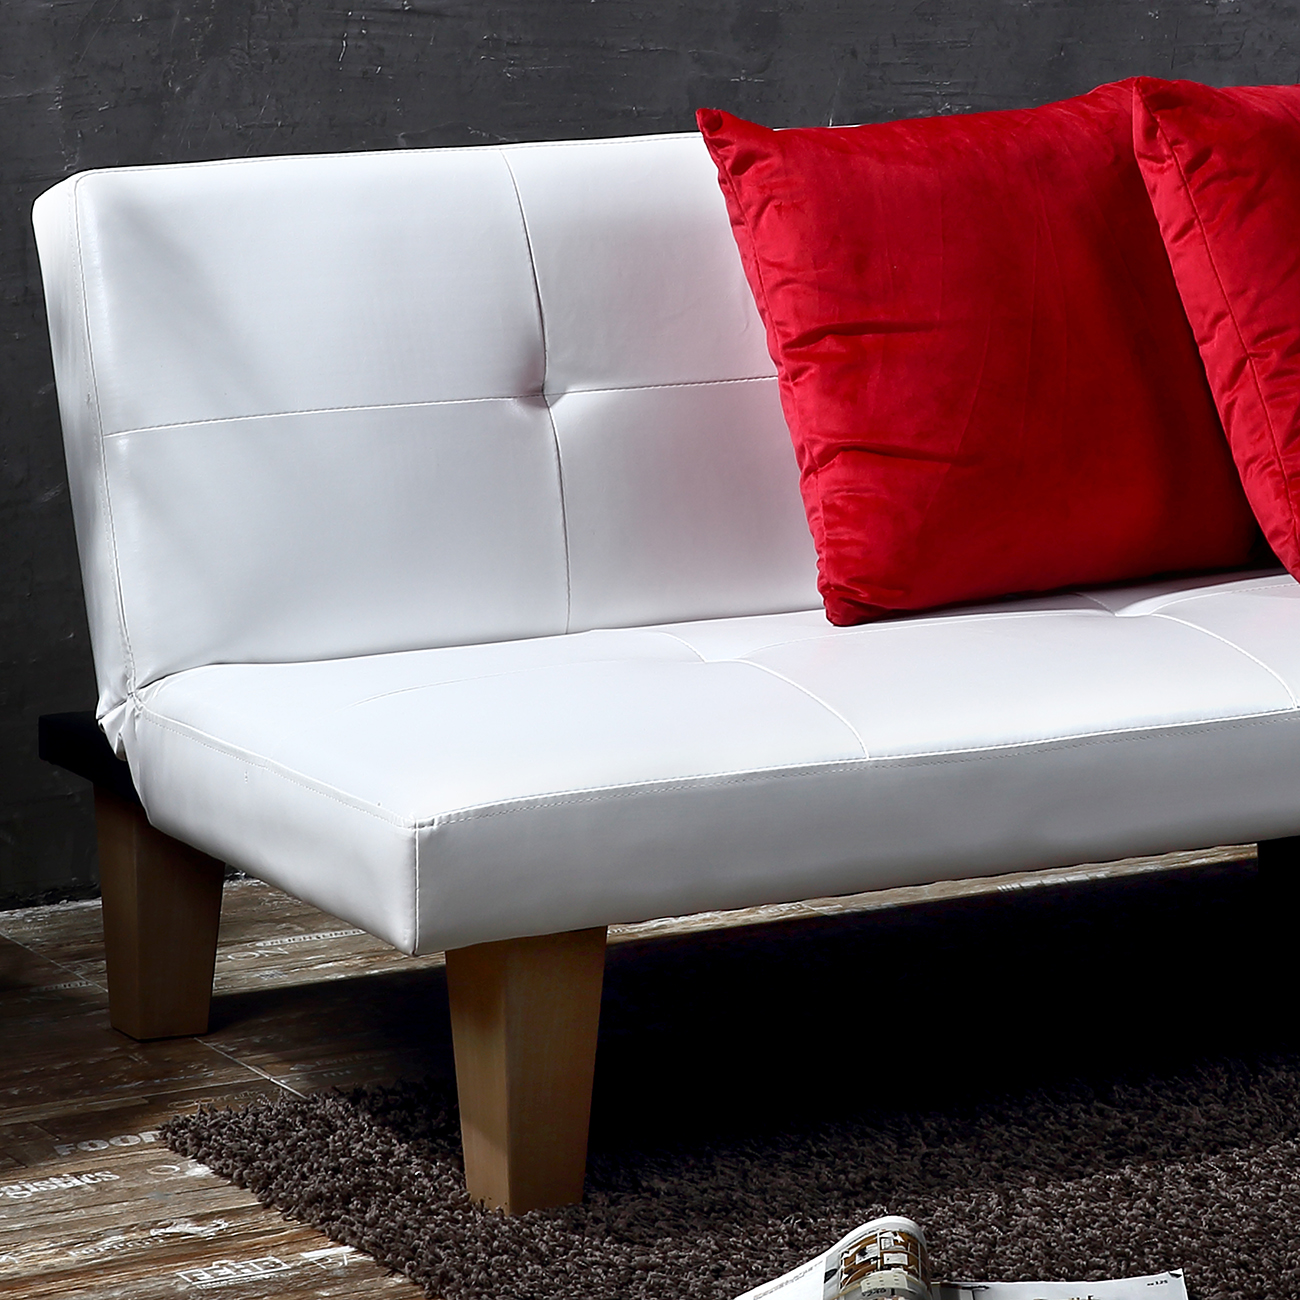 Convertible Couch100 Couch For Dorm Decorating Ideas